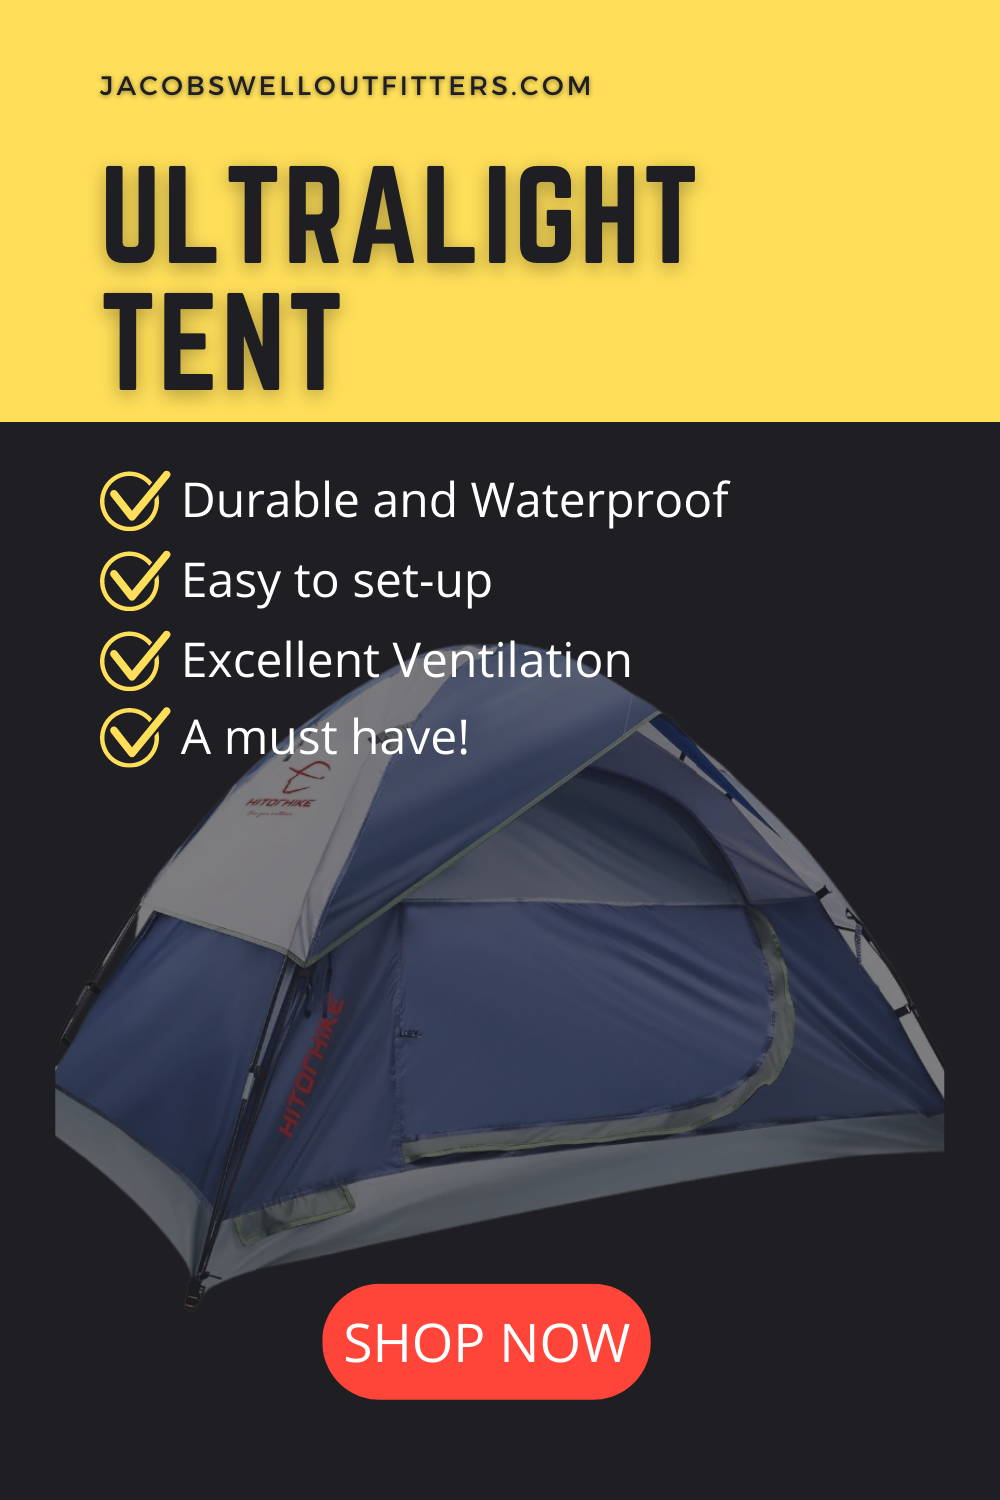 camping guide, camp like a pro, how to camp, guide to camping, camping tips, camping blog